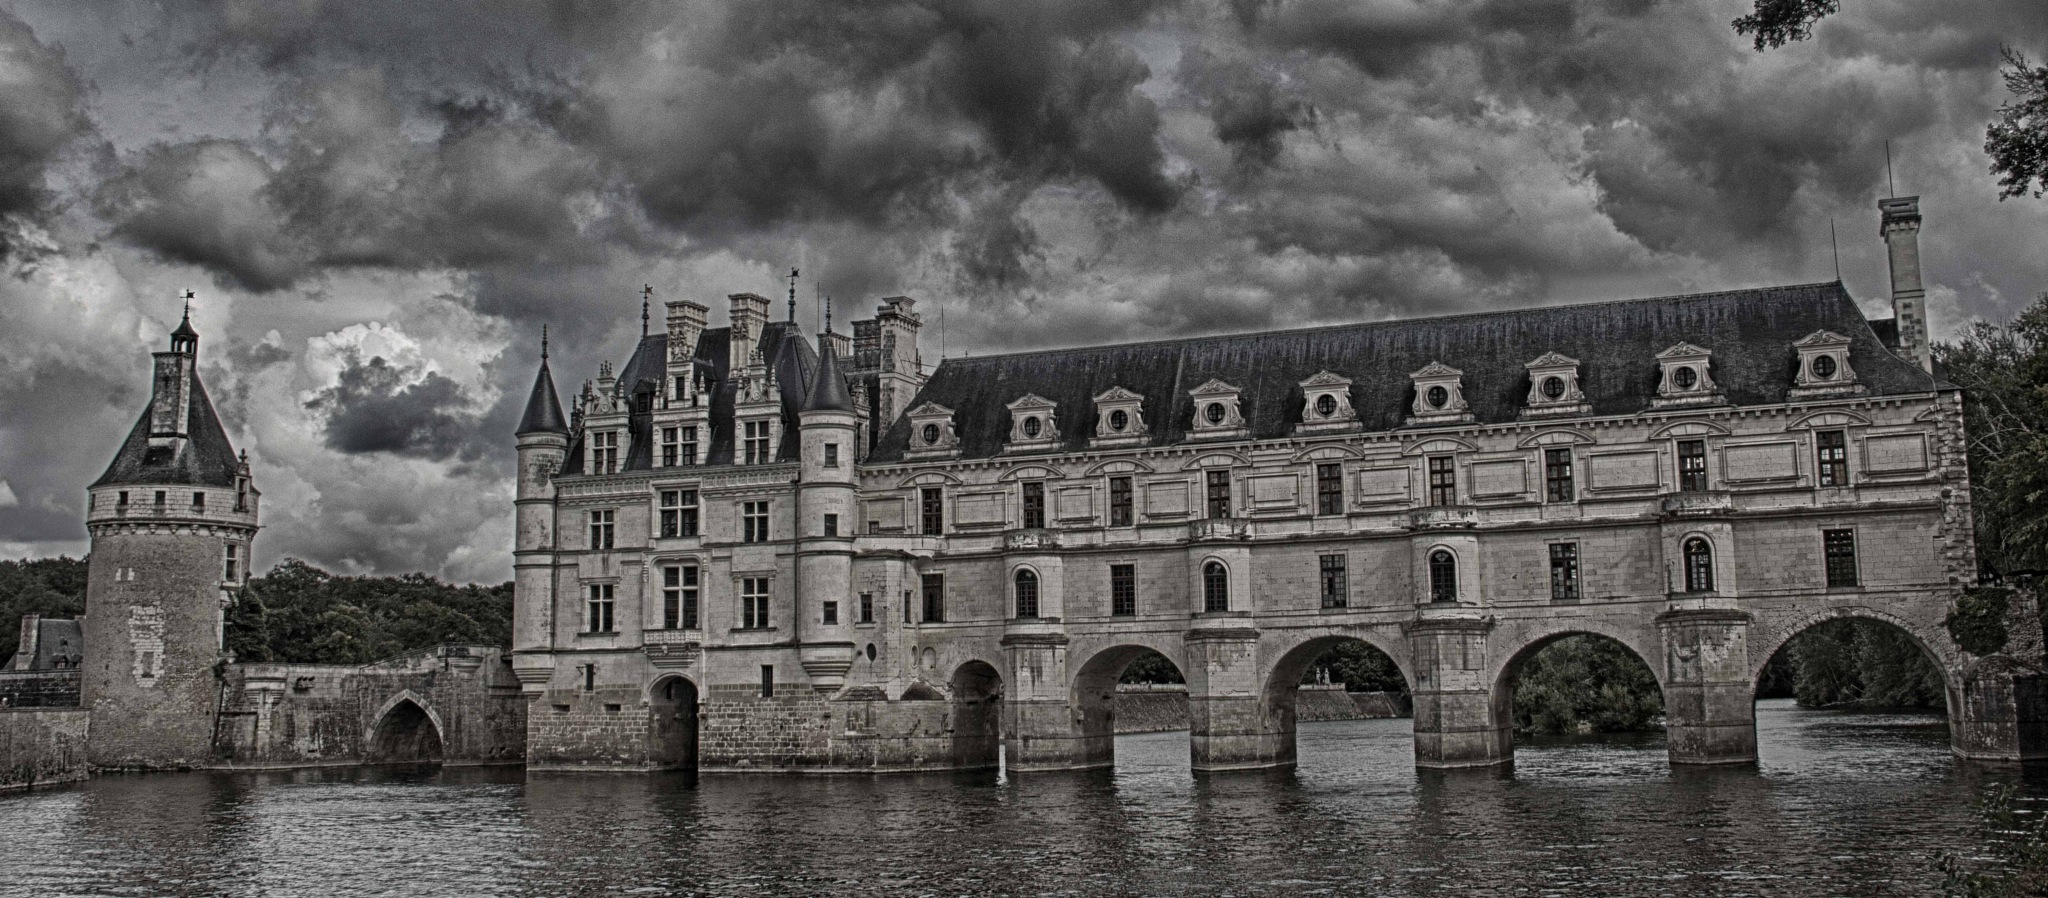 chenonceau by abeille77